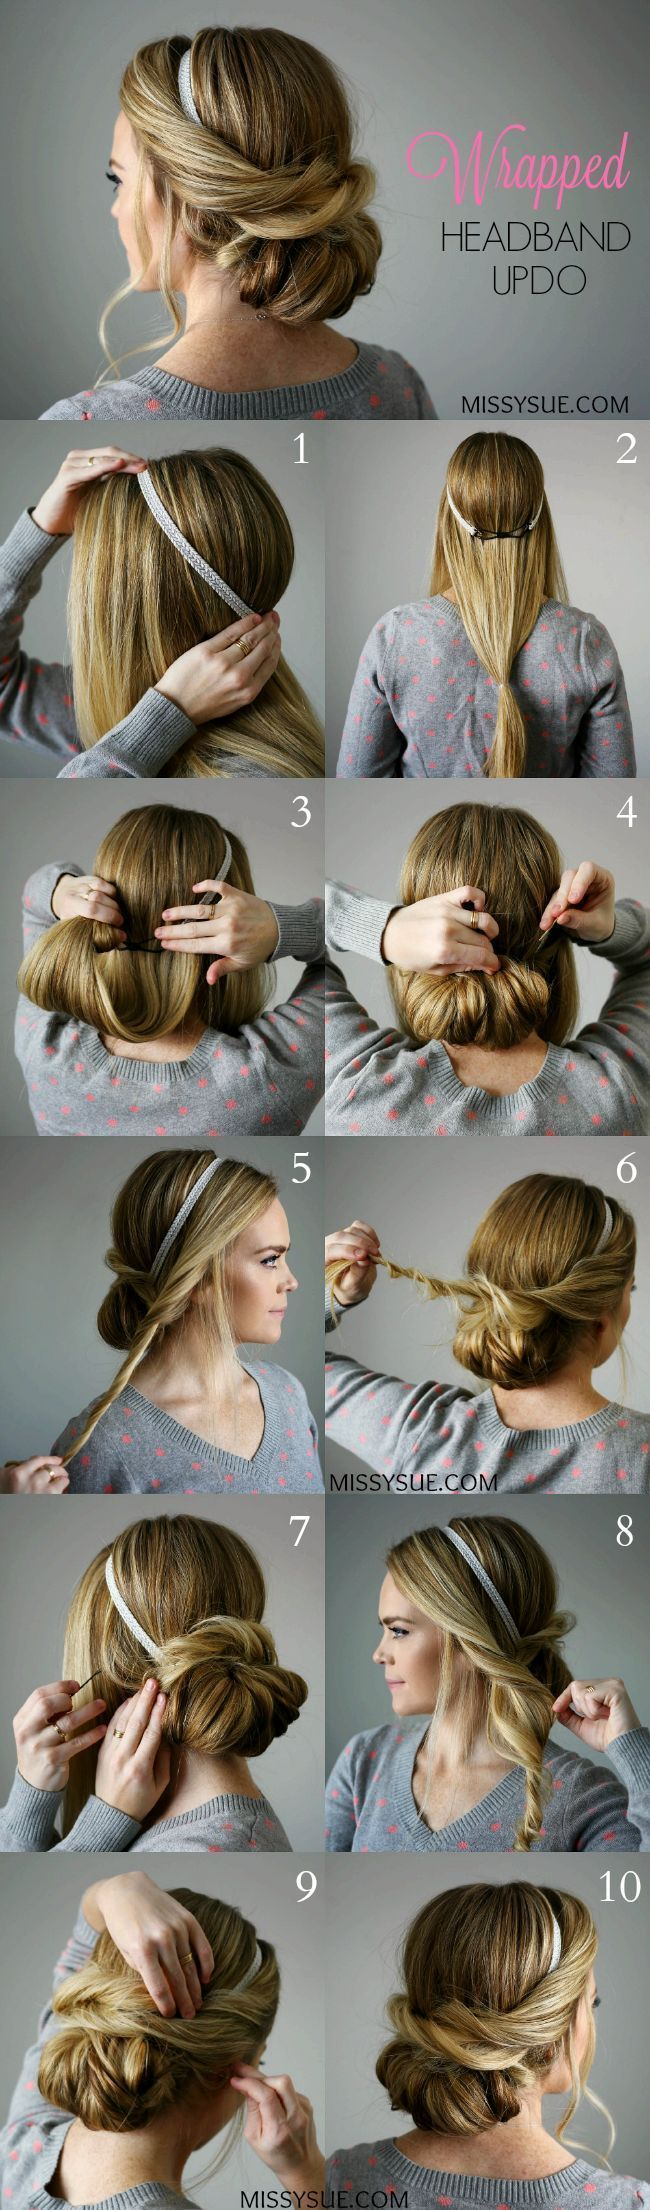 Use these great hair care tips with little fuss wedding hairstyles